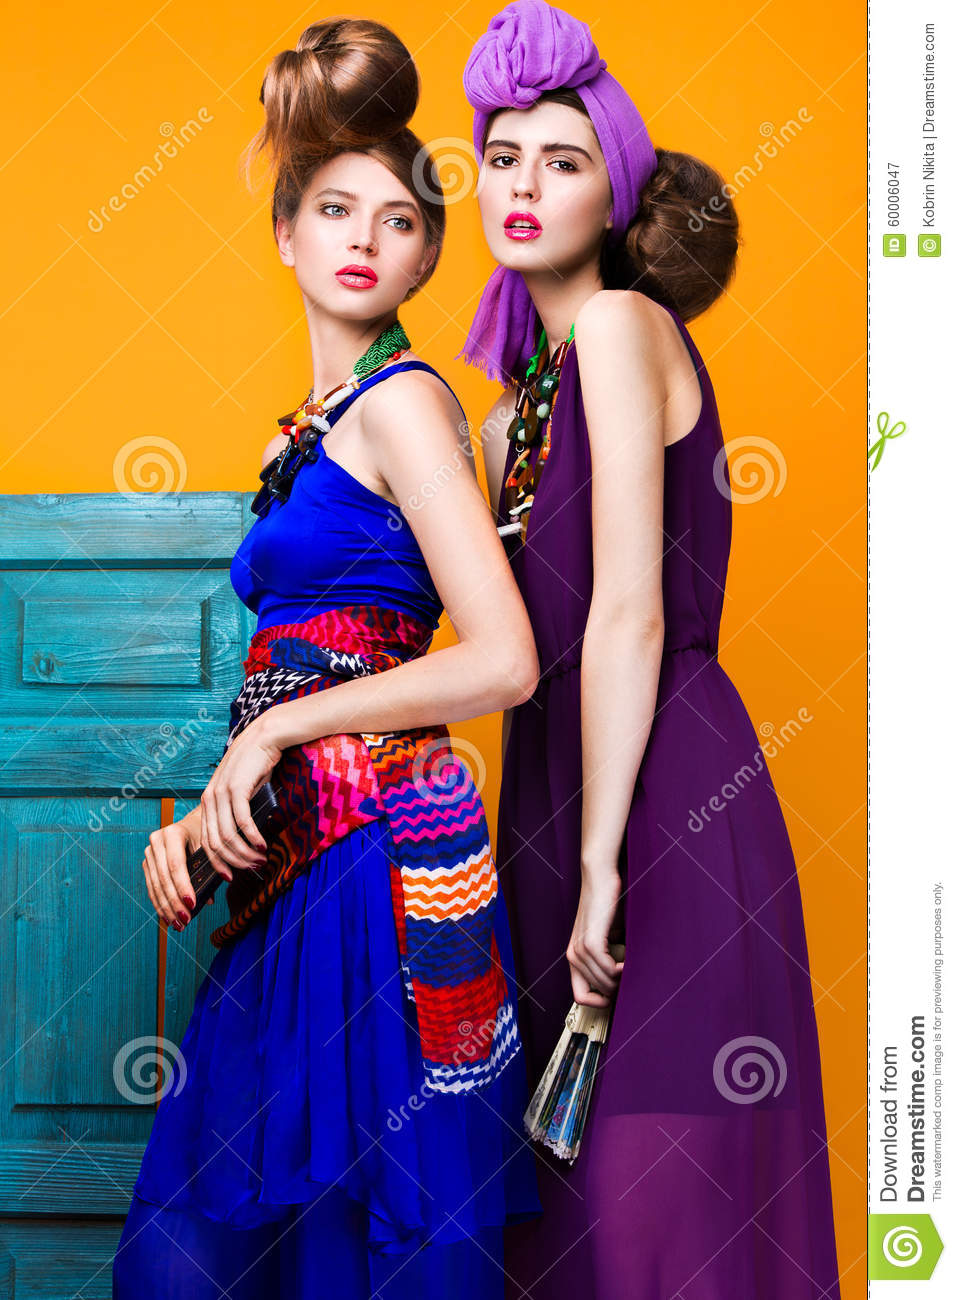 Beautiful Fashionable Women An Unusual Hairstyle In Bright Clothes